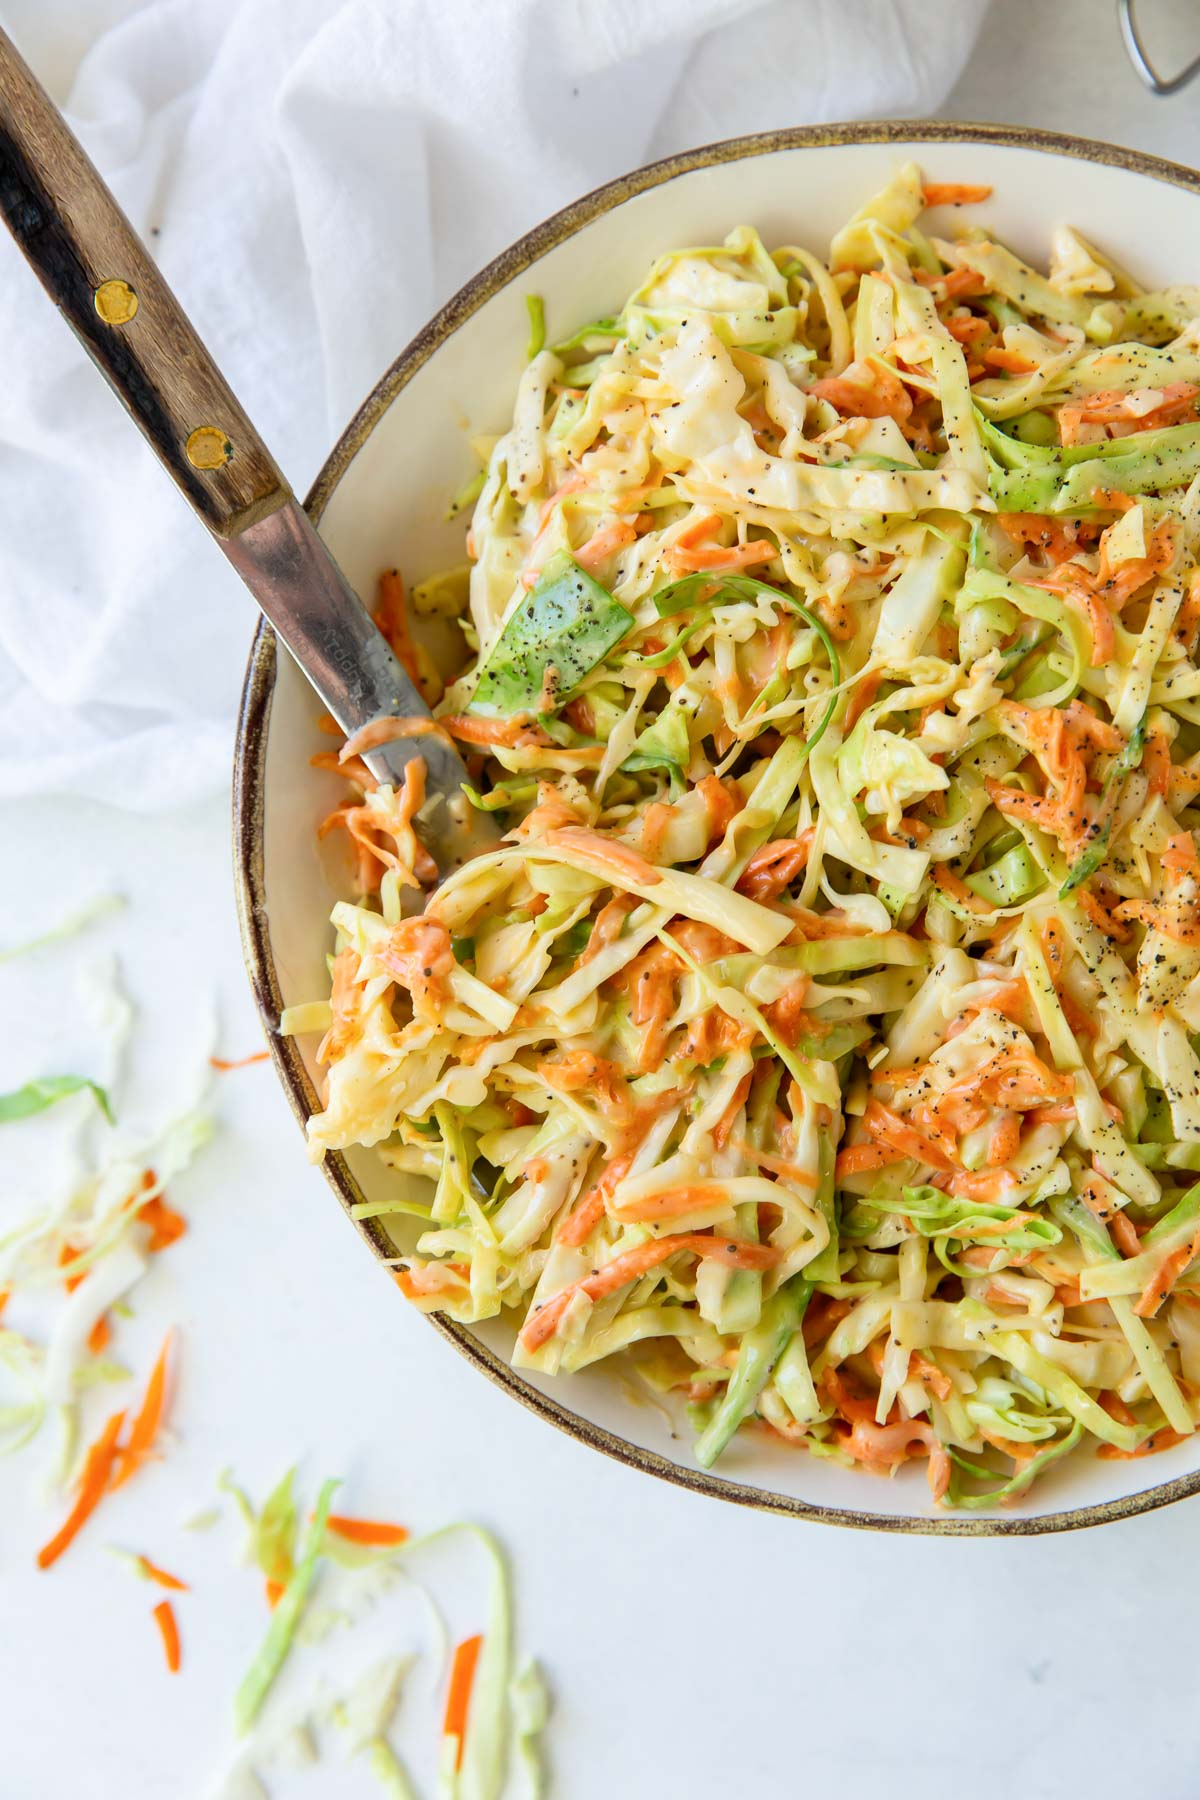 cabbage and carrot coleslaw in a bowl with a serving spoon